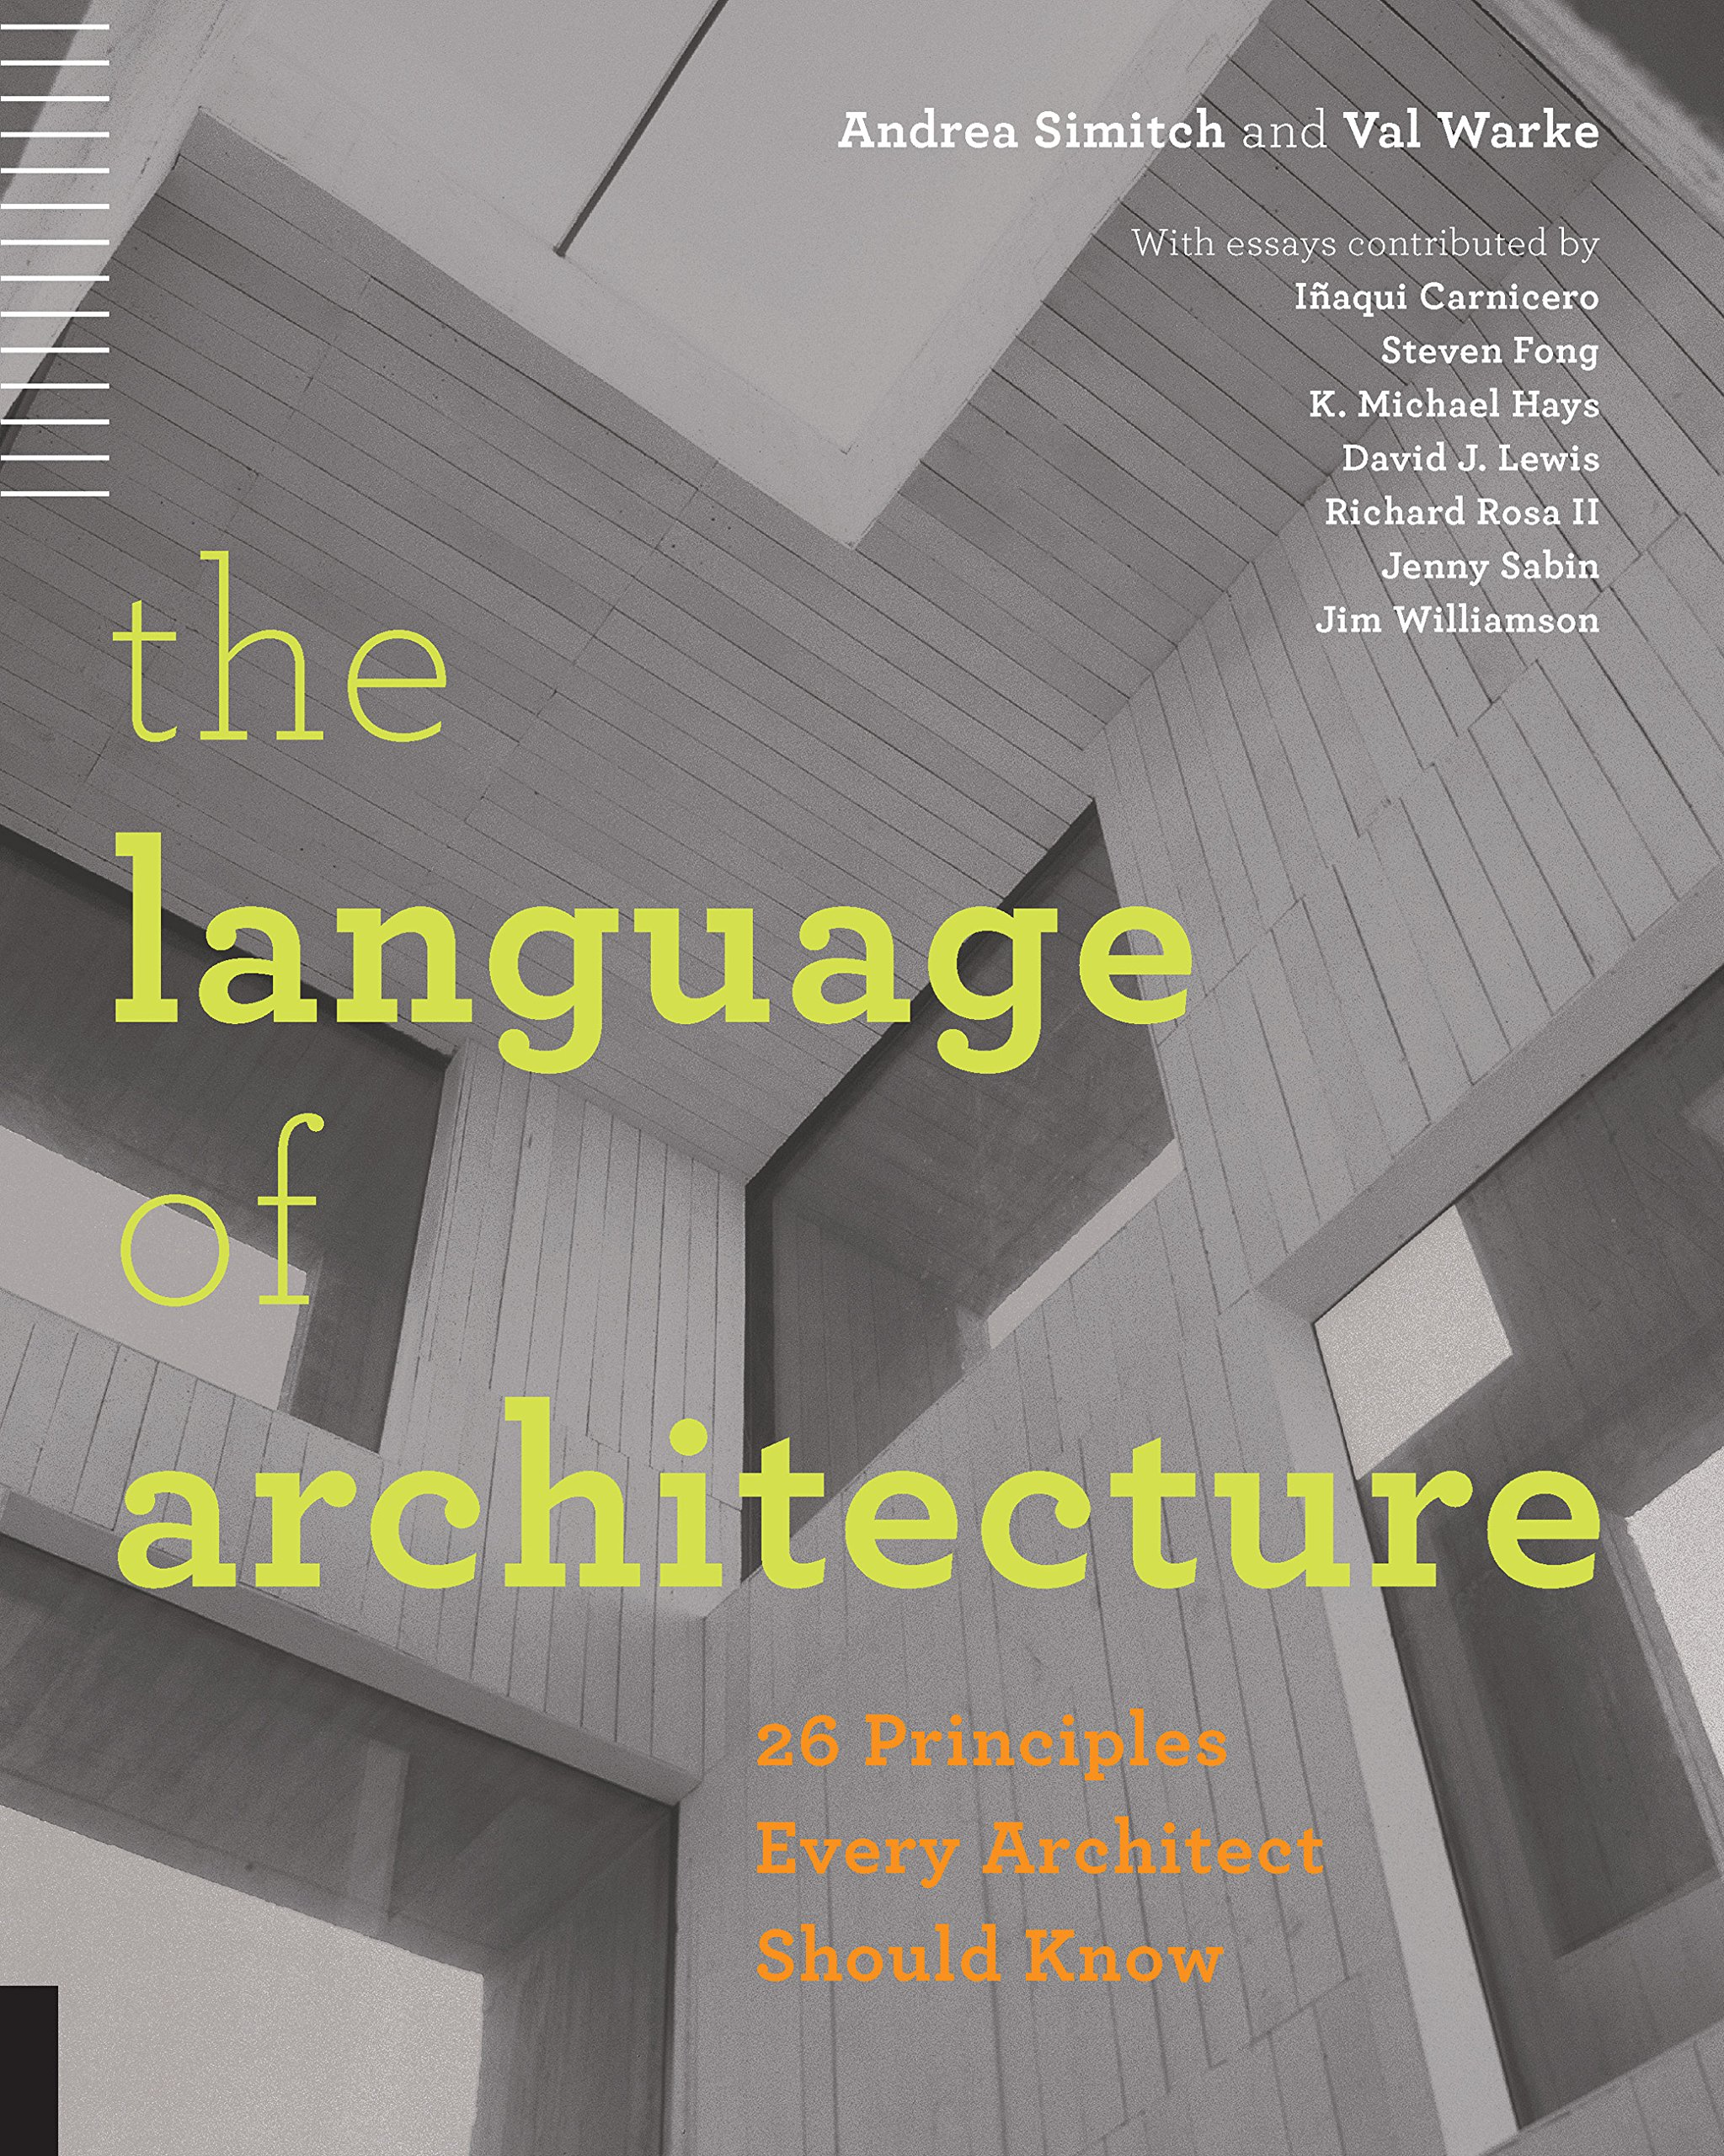 The Language of Architecture: 26 Principles Every Architect Should Know by Rockport Publishers